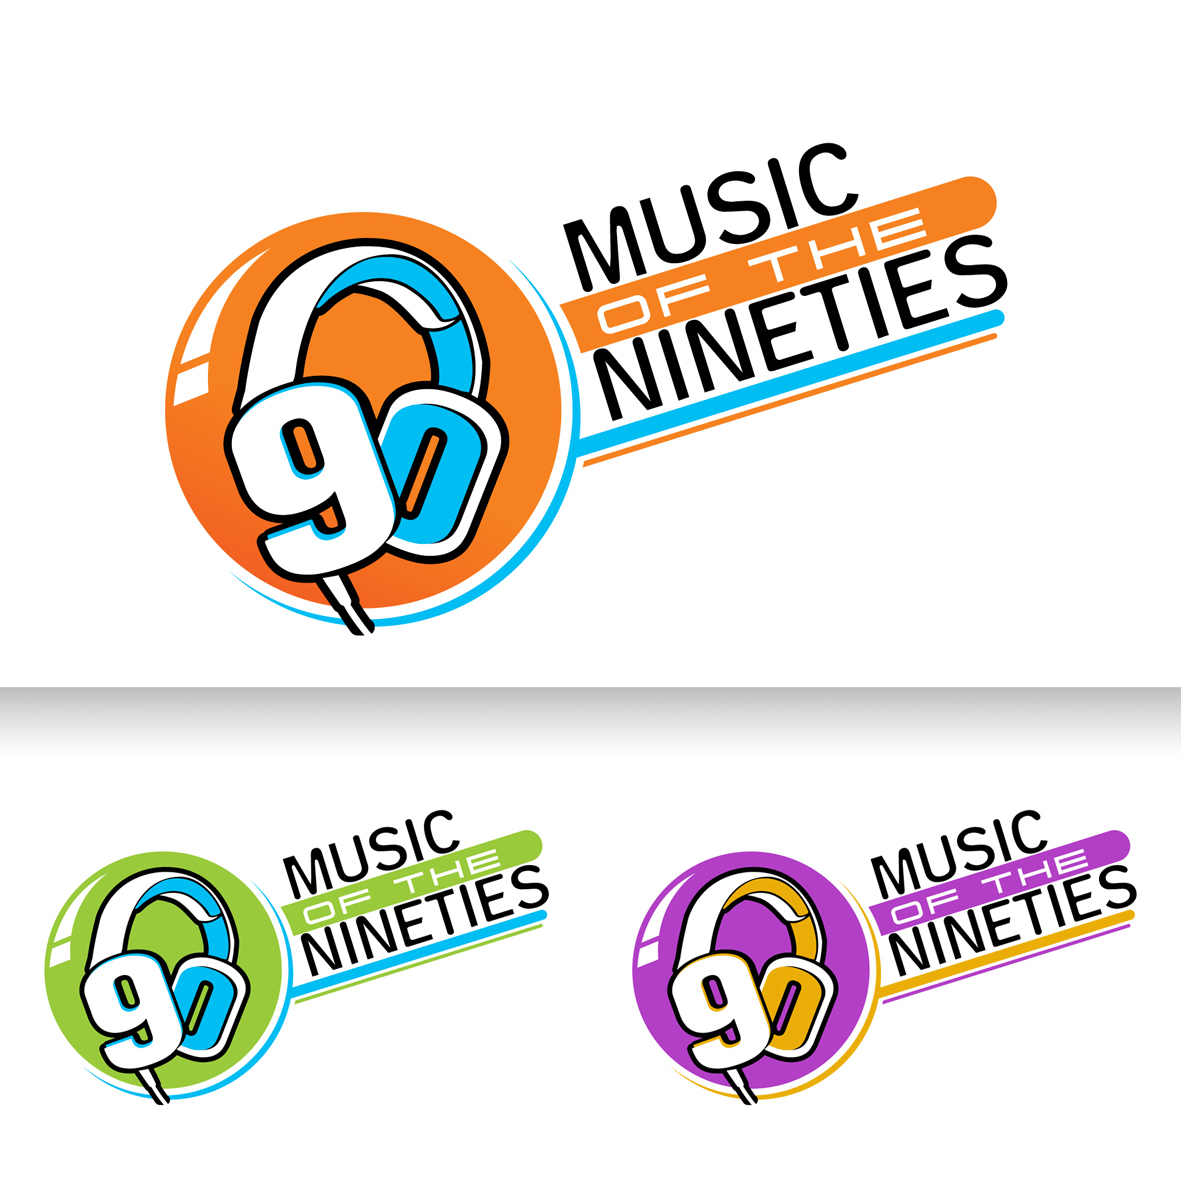 Logo Design by Alexander Ioannidis - Entry No. 32 in the Logo Design Contest Music of the Nineties Logo.